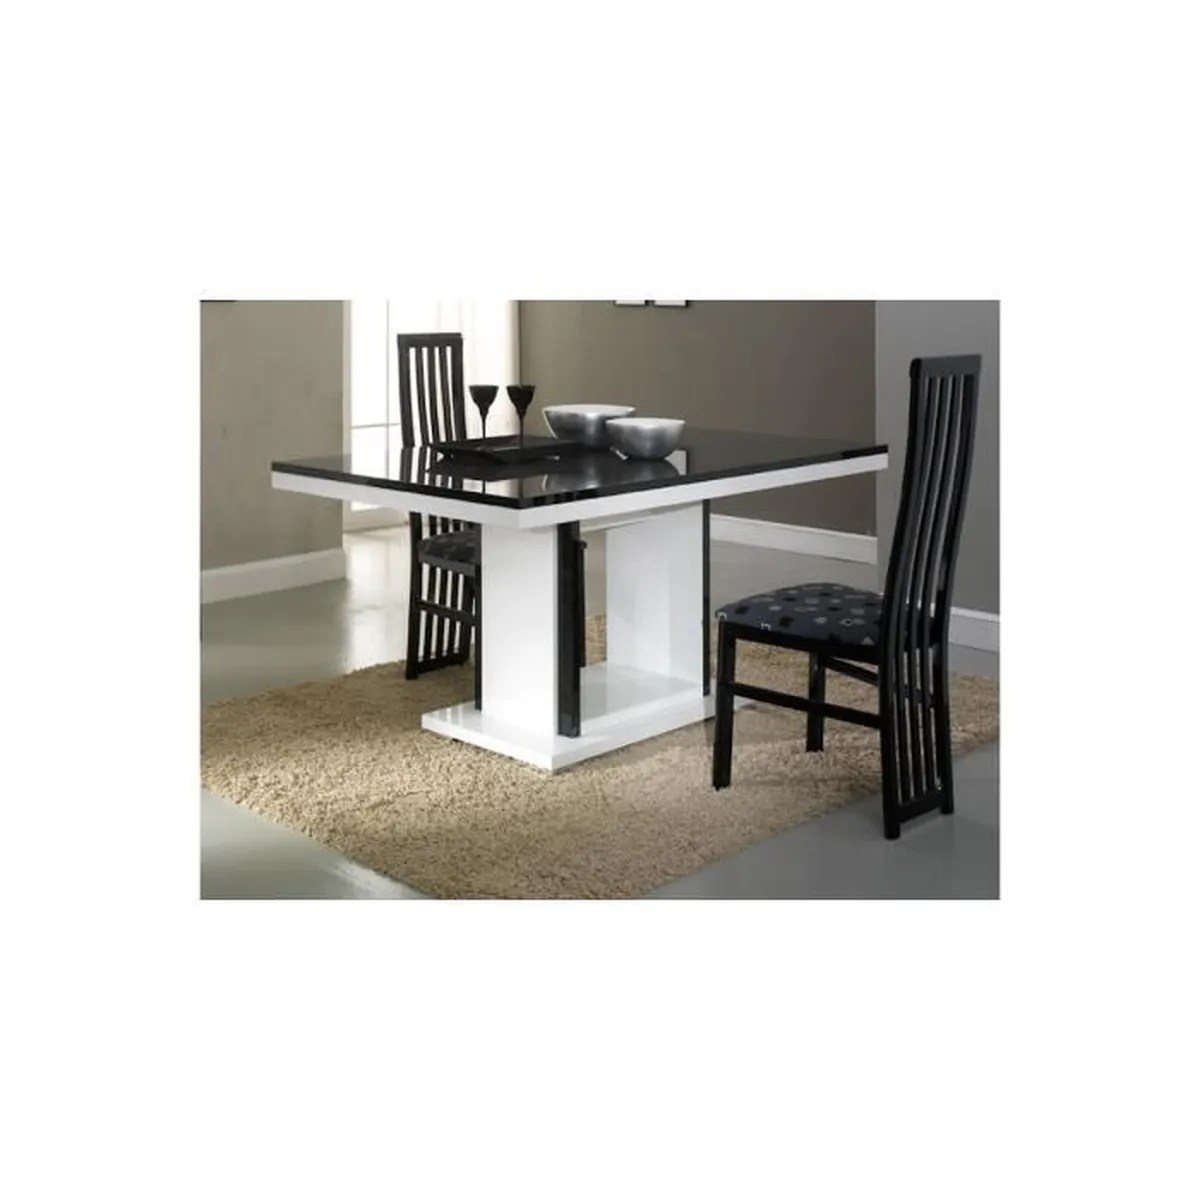 Table Rectangulaire Pas Cher Table Rectangulaire Pied Central Achat Vente Table